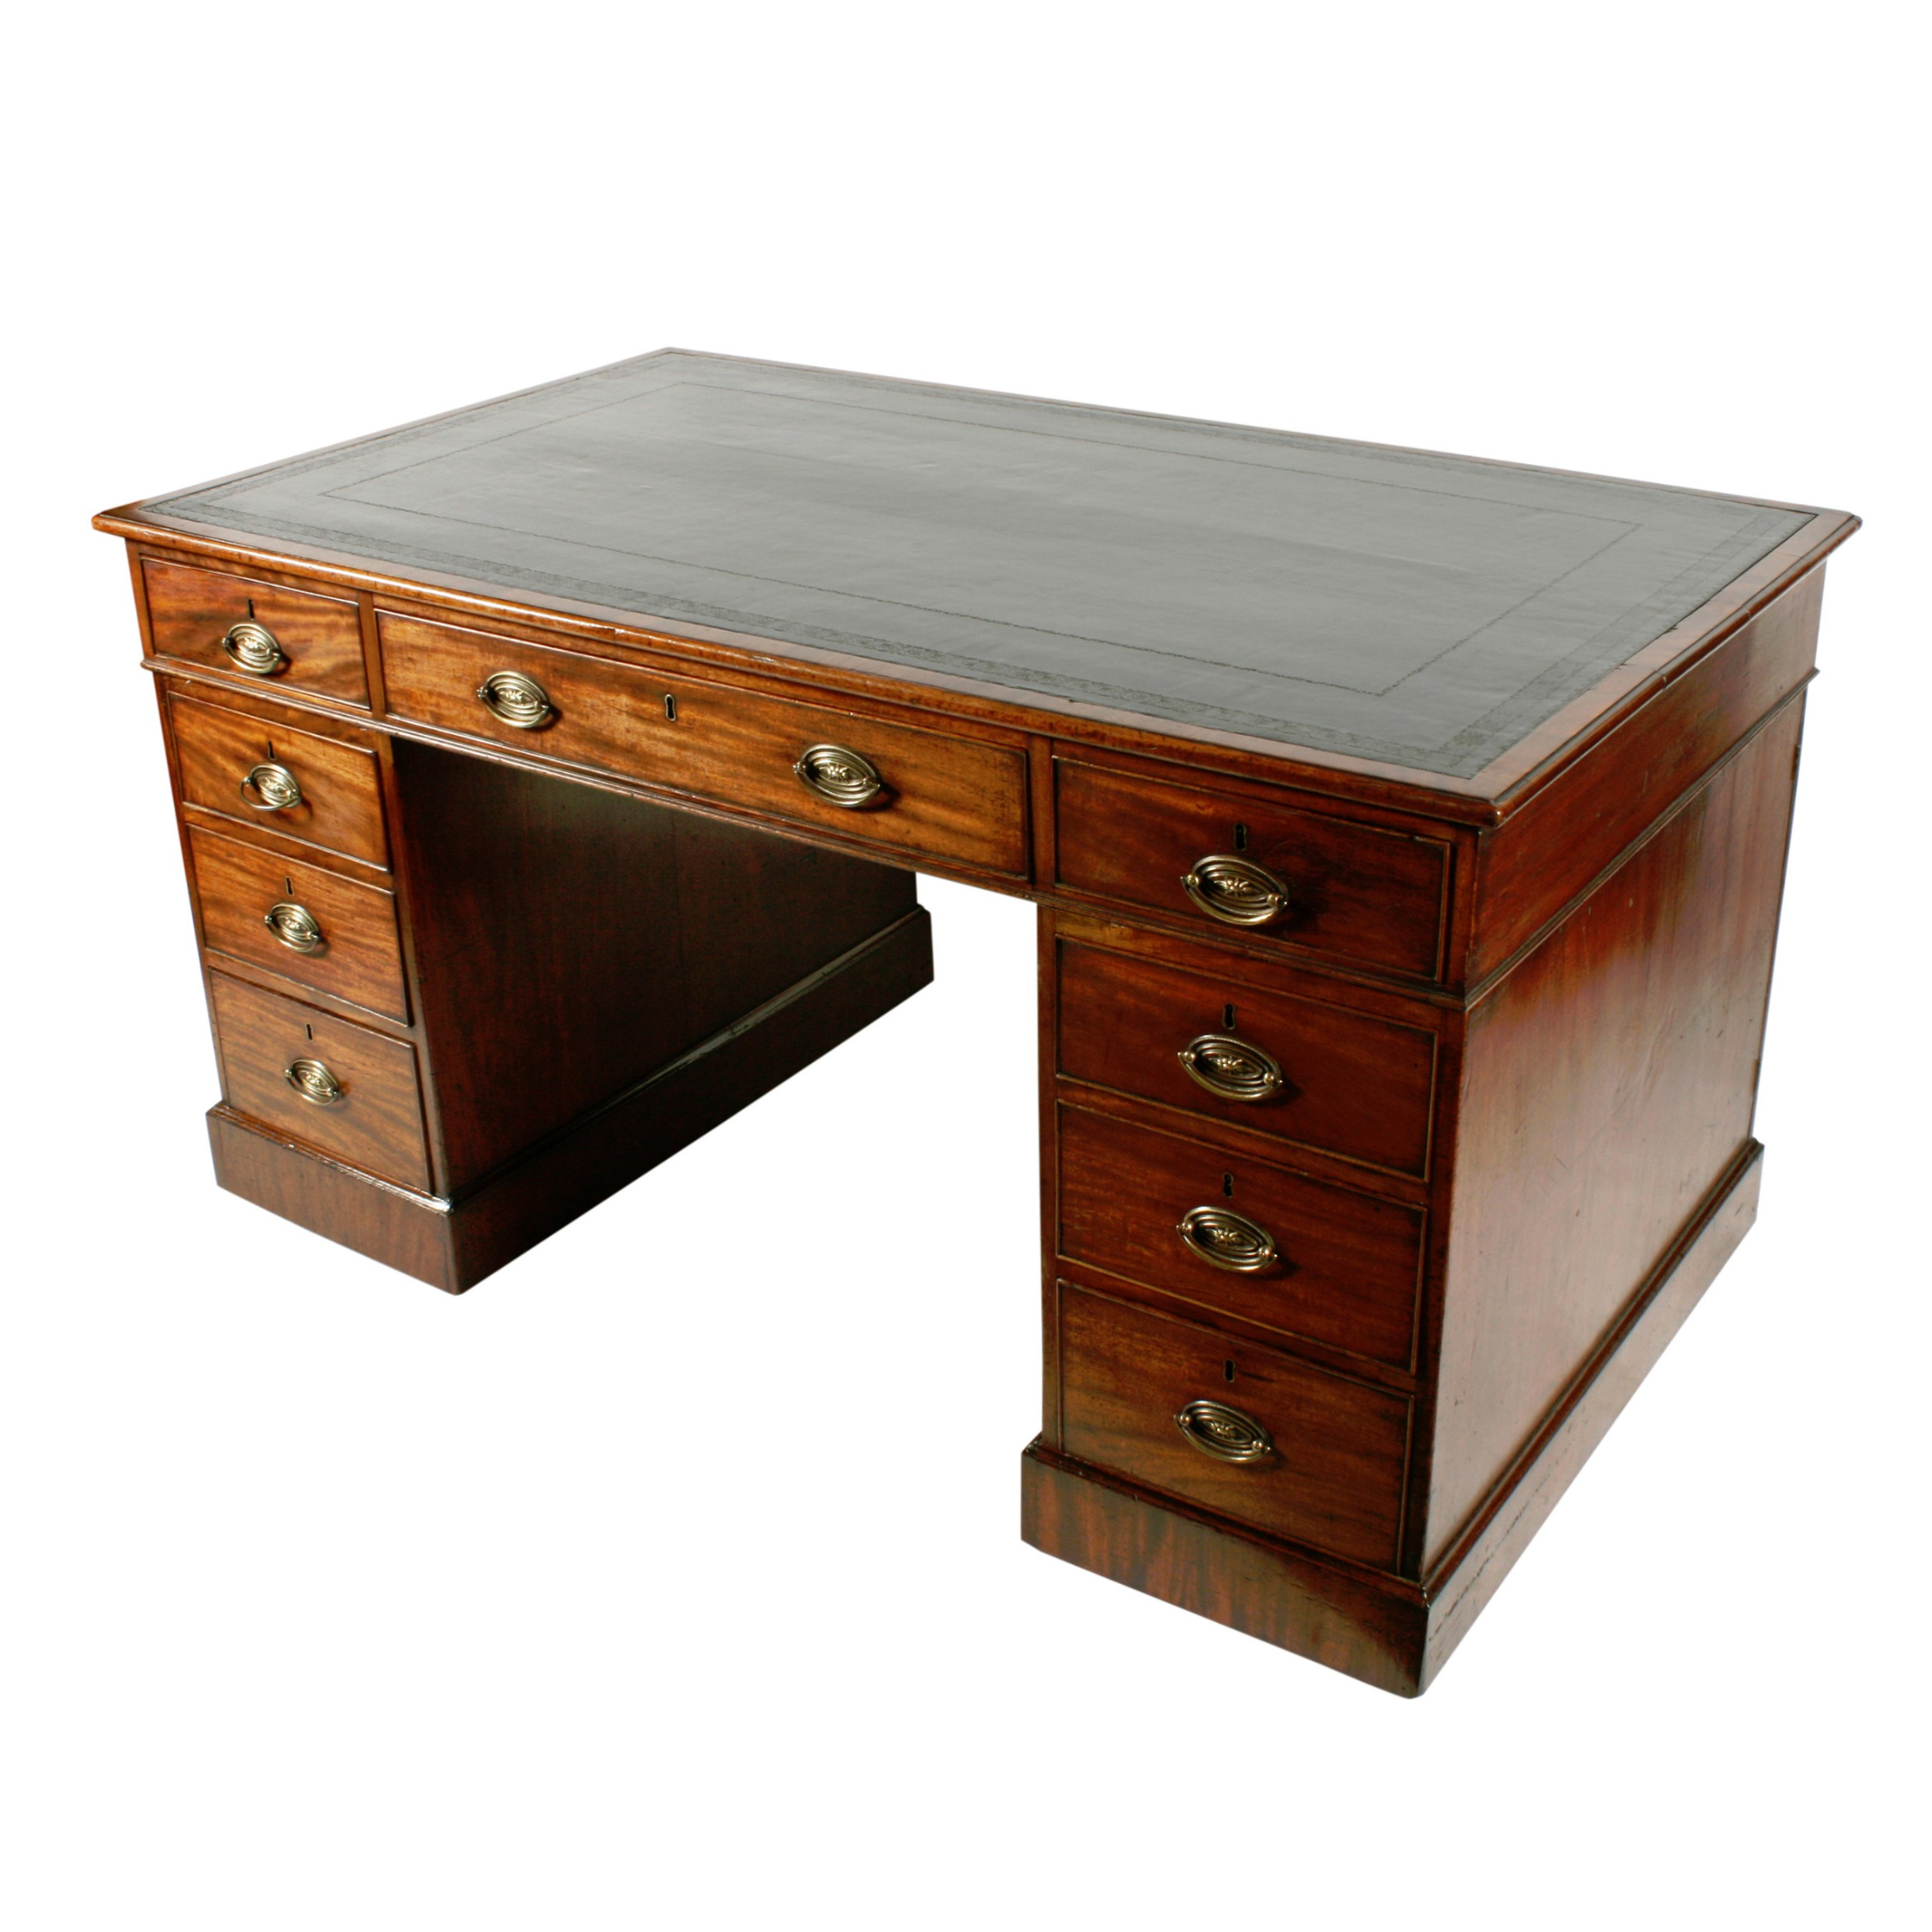 georgian mahogany partner's desk